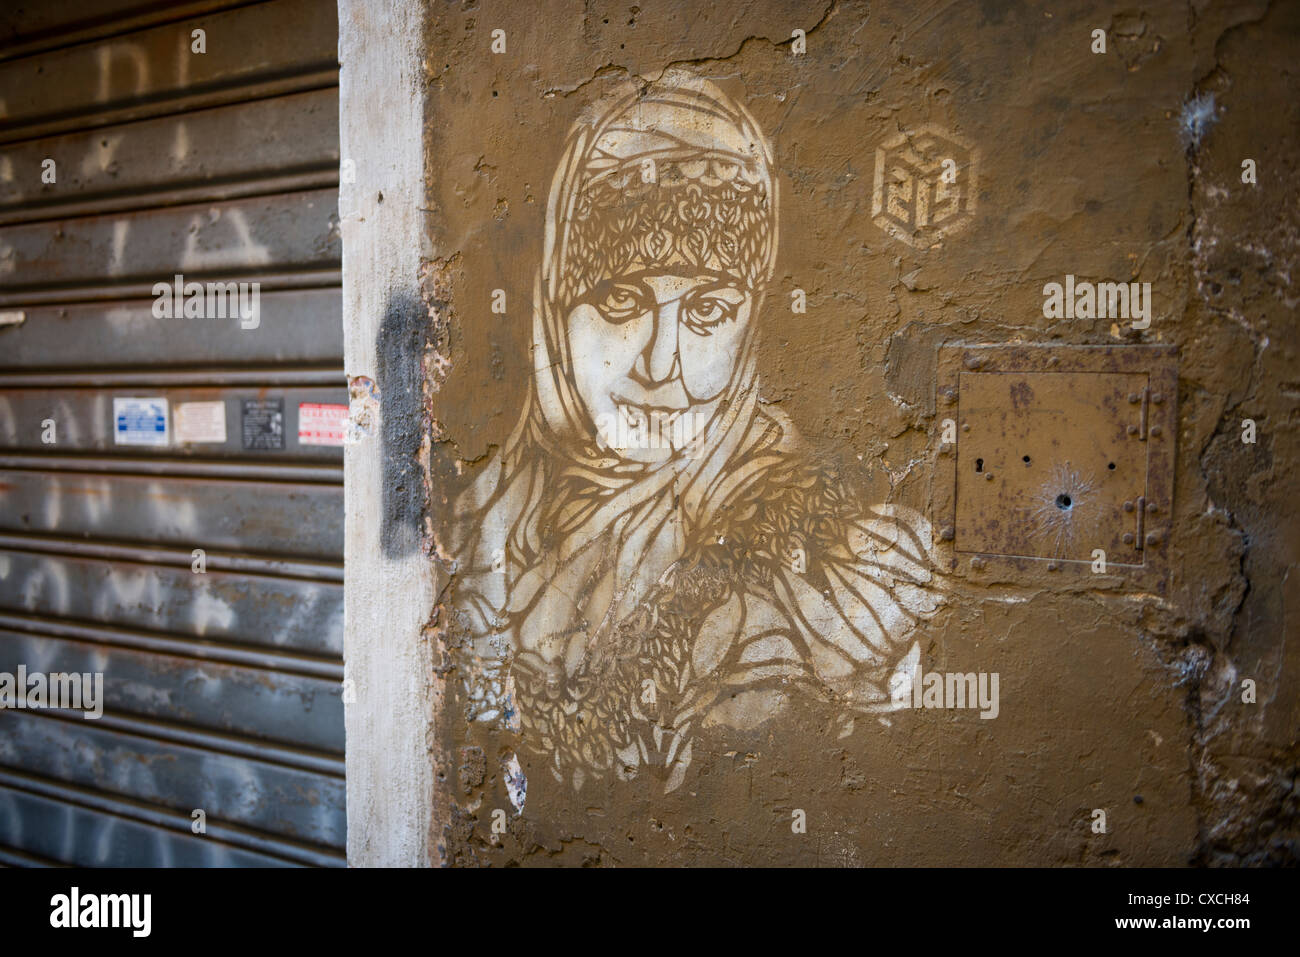 Composite Image Of Stencil Graffiti >> Wall Details With Stencil Graffiti On The Streets Of Rome Roma